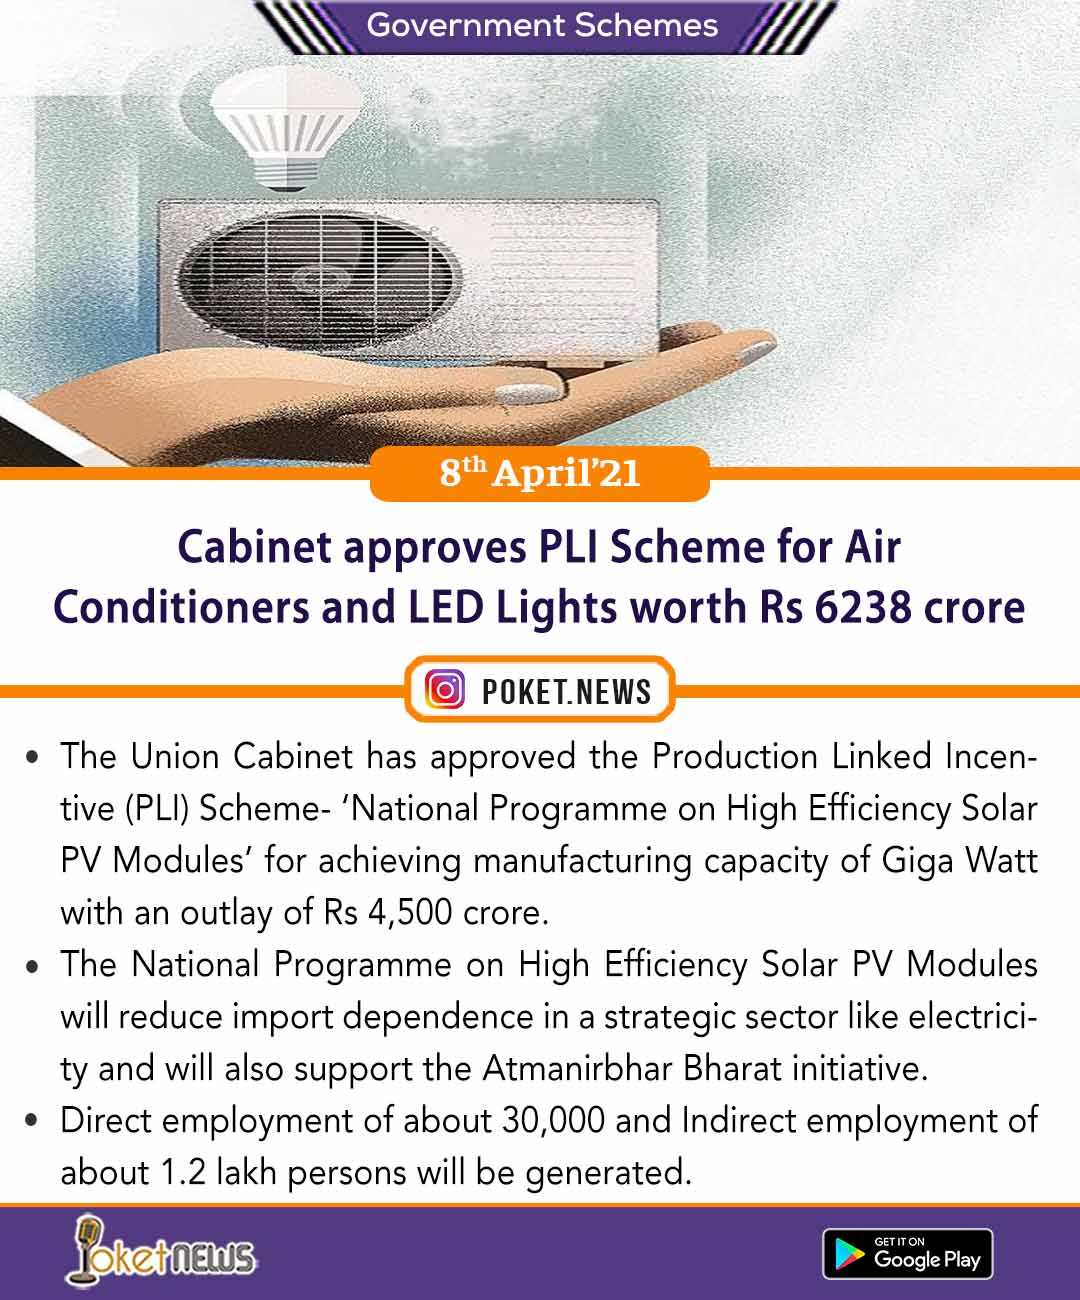 Cabinet approves PLI Scheme for Air Conditioners and LED Lights worth Rs 6238 crore